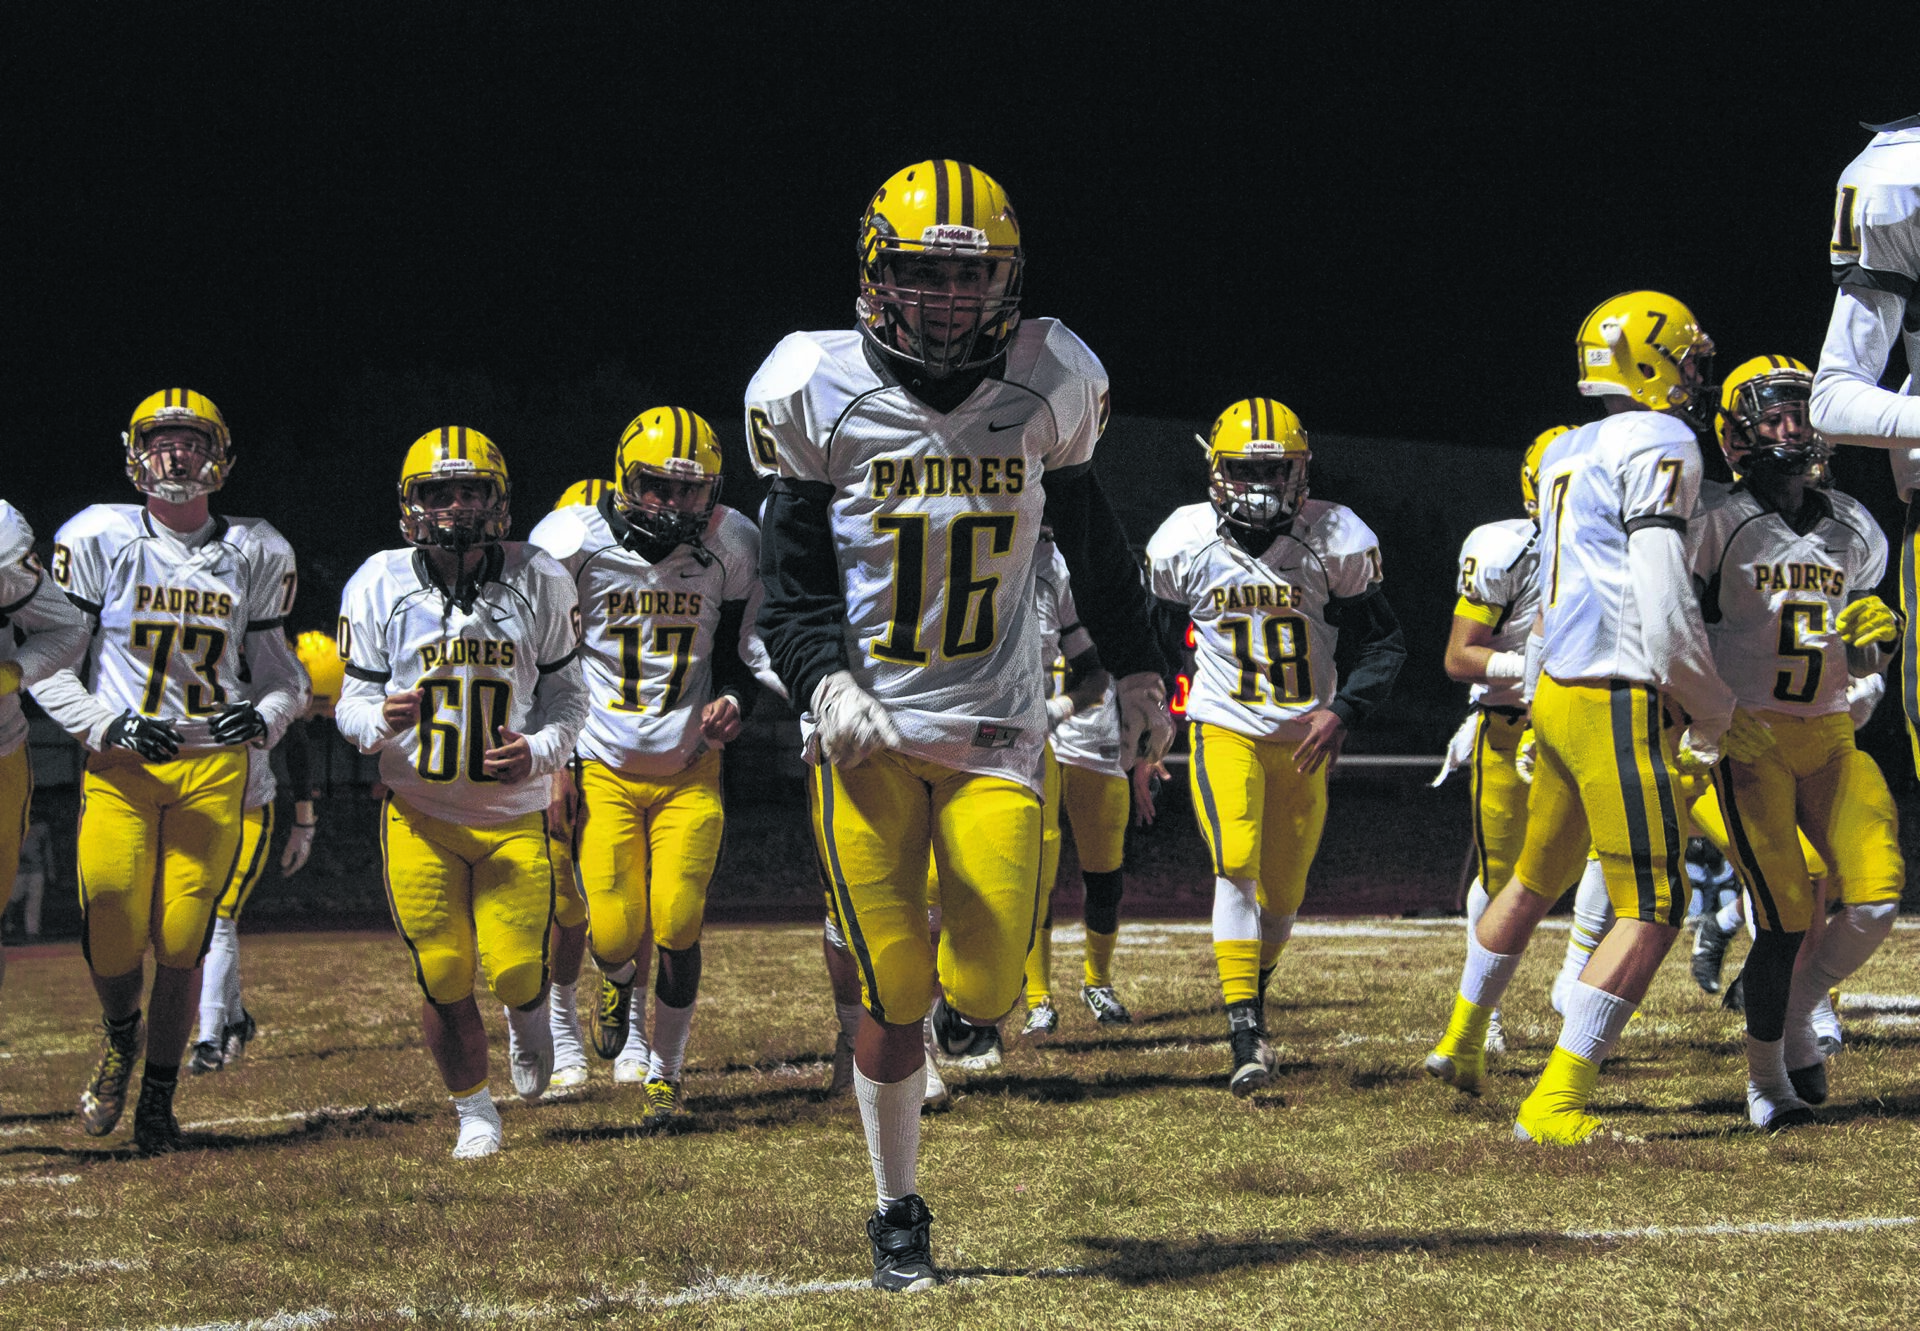 Marcos de Niza players take to the field after halftime during a playoff game against Ironwood Ridge in Oro Valley on November 13, 2015. Padres defeat Nighthawks 35-15. Wrangler News photo by Ana Ramirez.